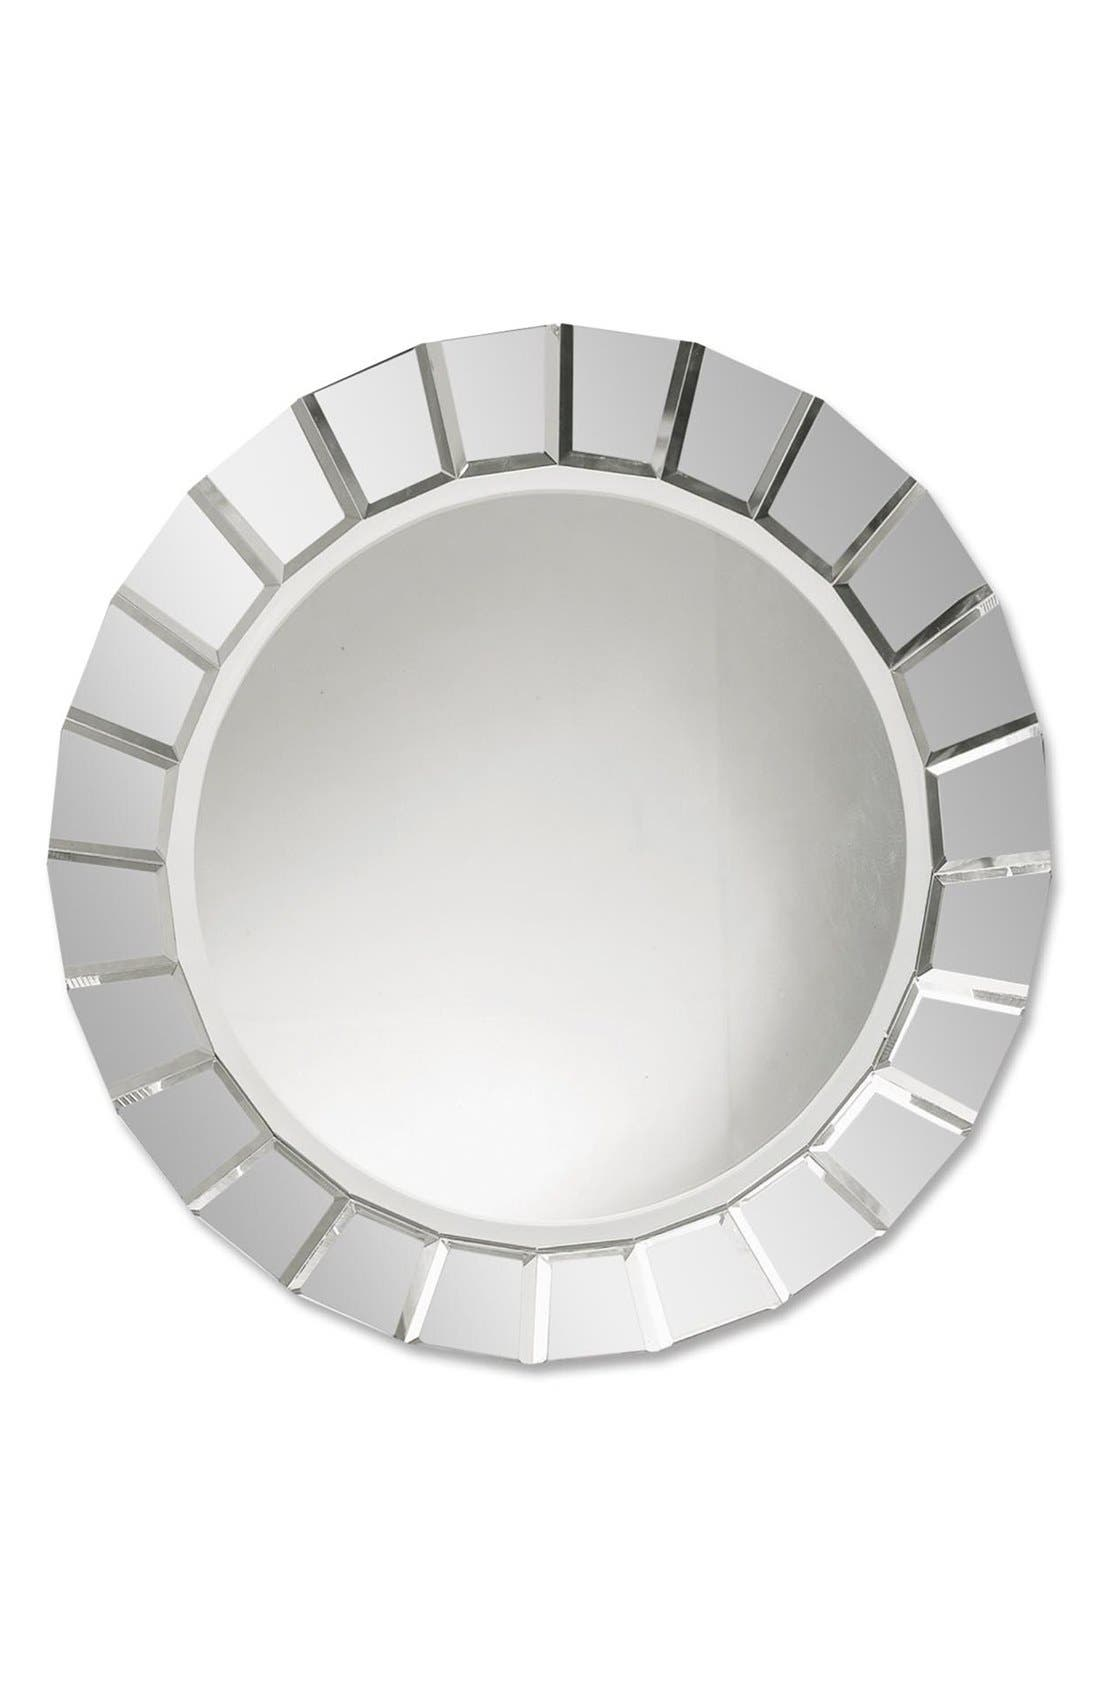 'Fortune' Round Mirror,                             Main thumbnail 1, color,                             100